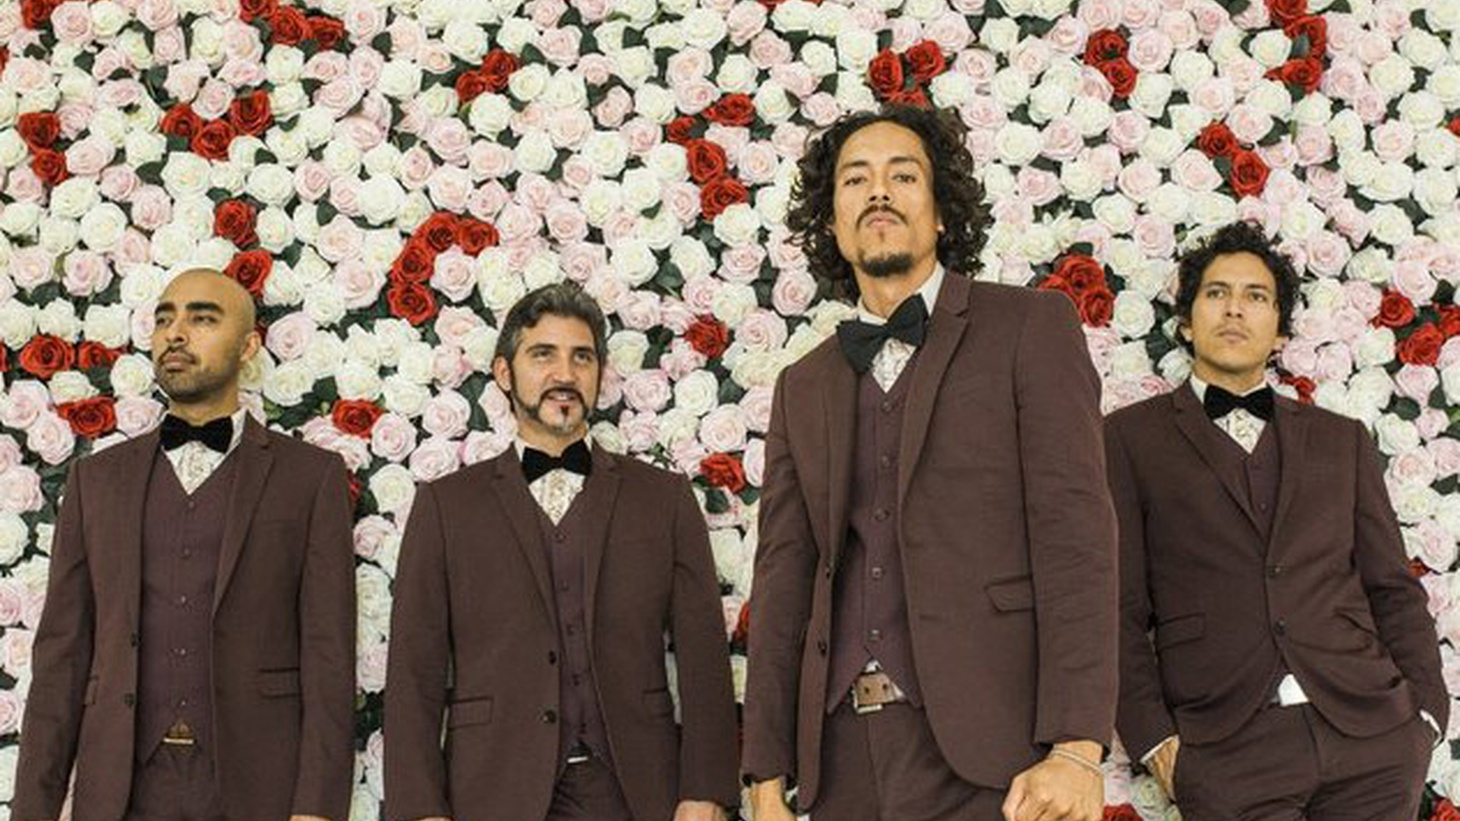 Based in Los Angeles Chicano Batman is attracting a lot of positive attention lately, both musically and culturally. The band made us proud at our SXSW showcase and a recent MBE session.